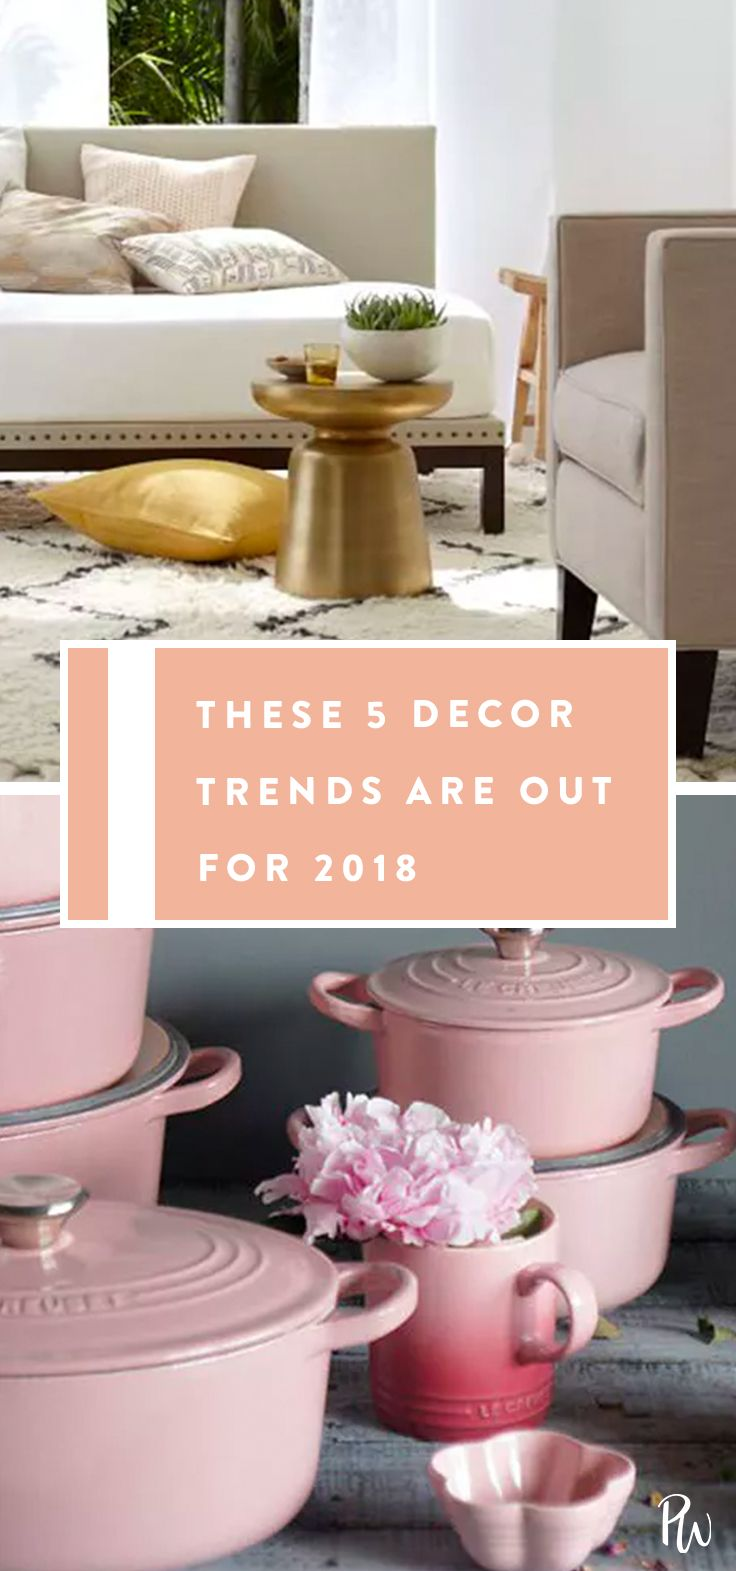 These 5 Decor Trends Are Officially On The Way Out For 2018 Homedecor Decorating